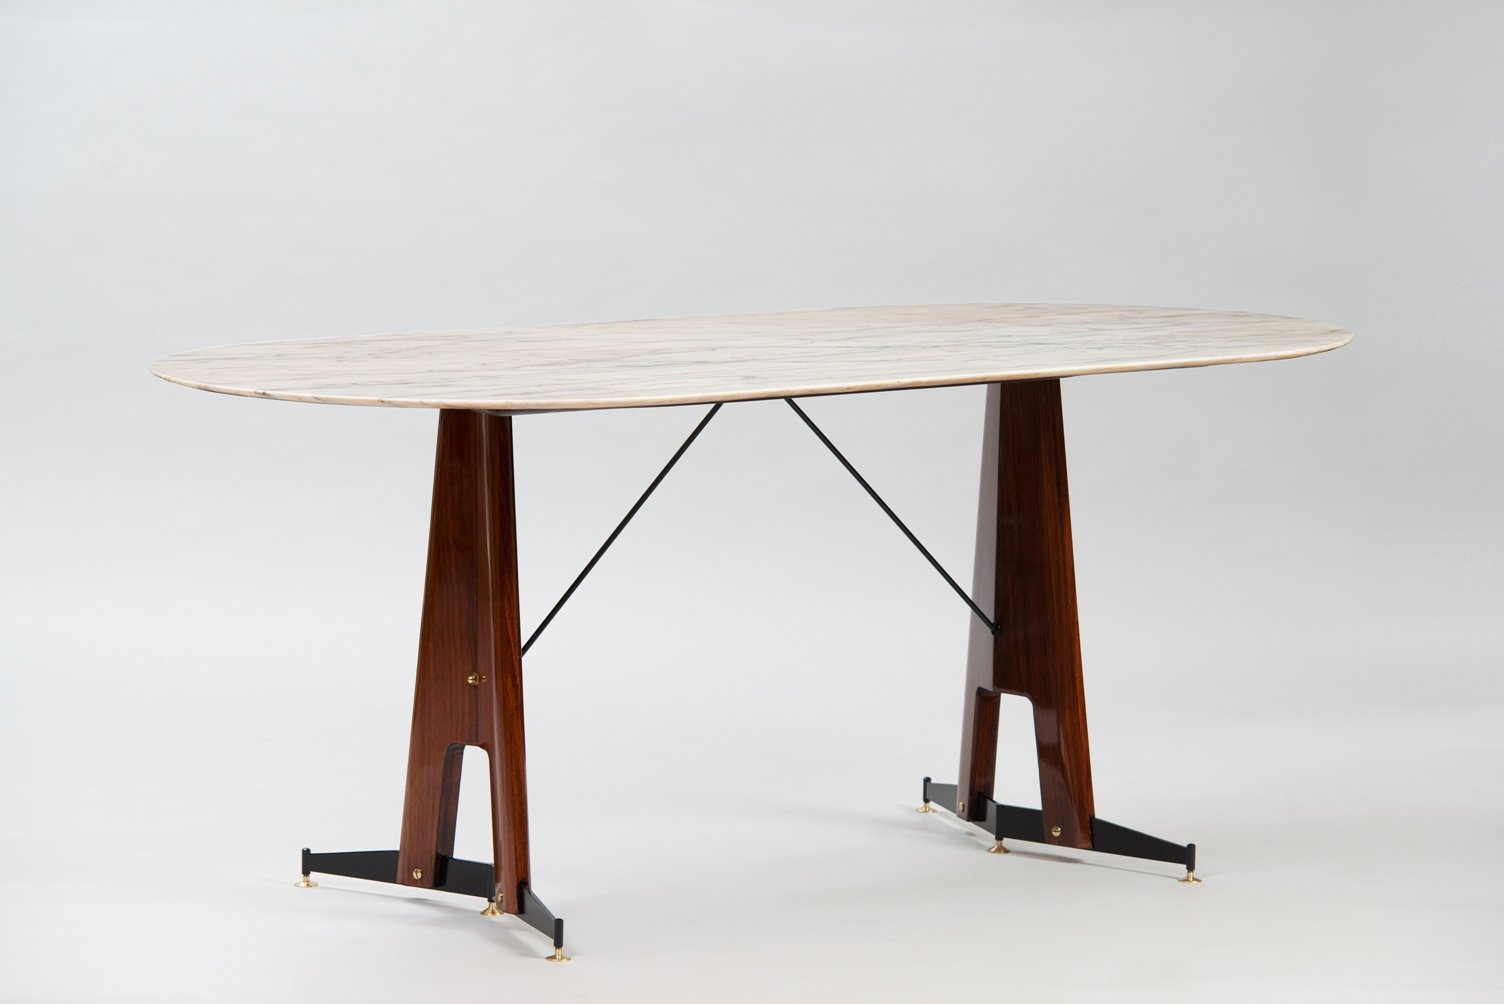 Table salle a manger marbre design for Table de salle a manger fermiere